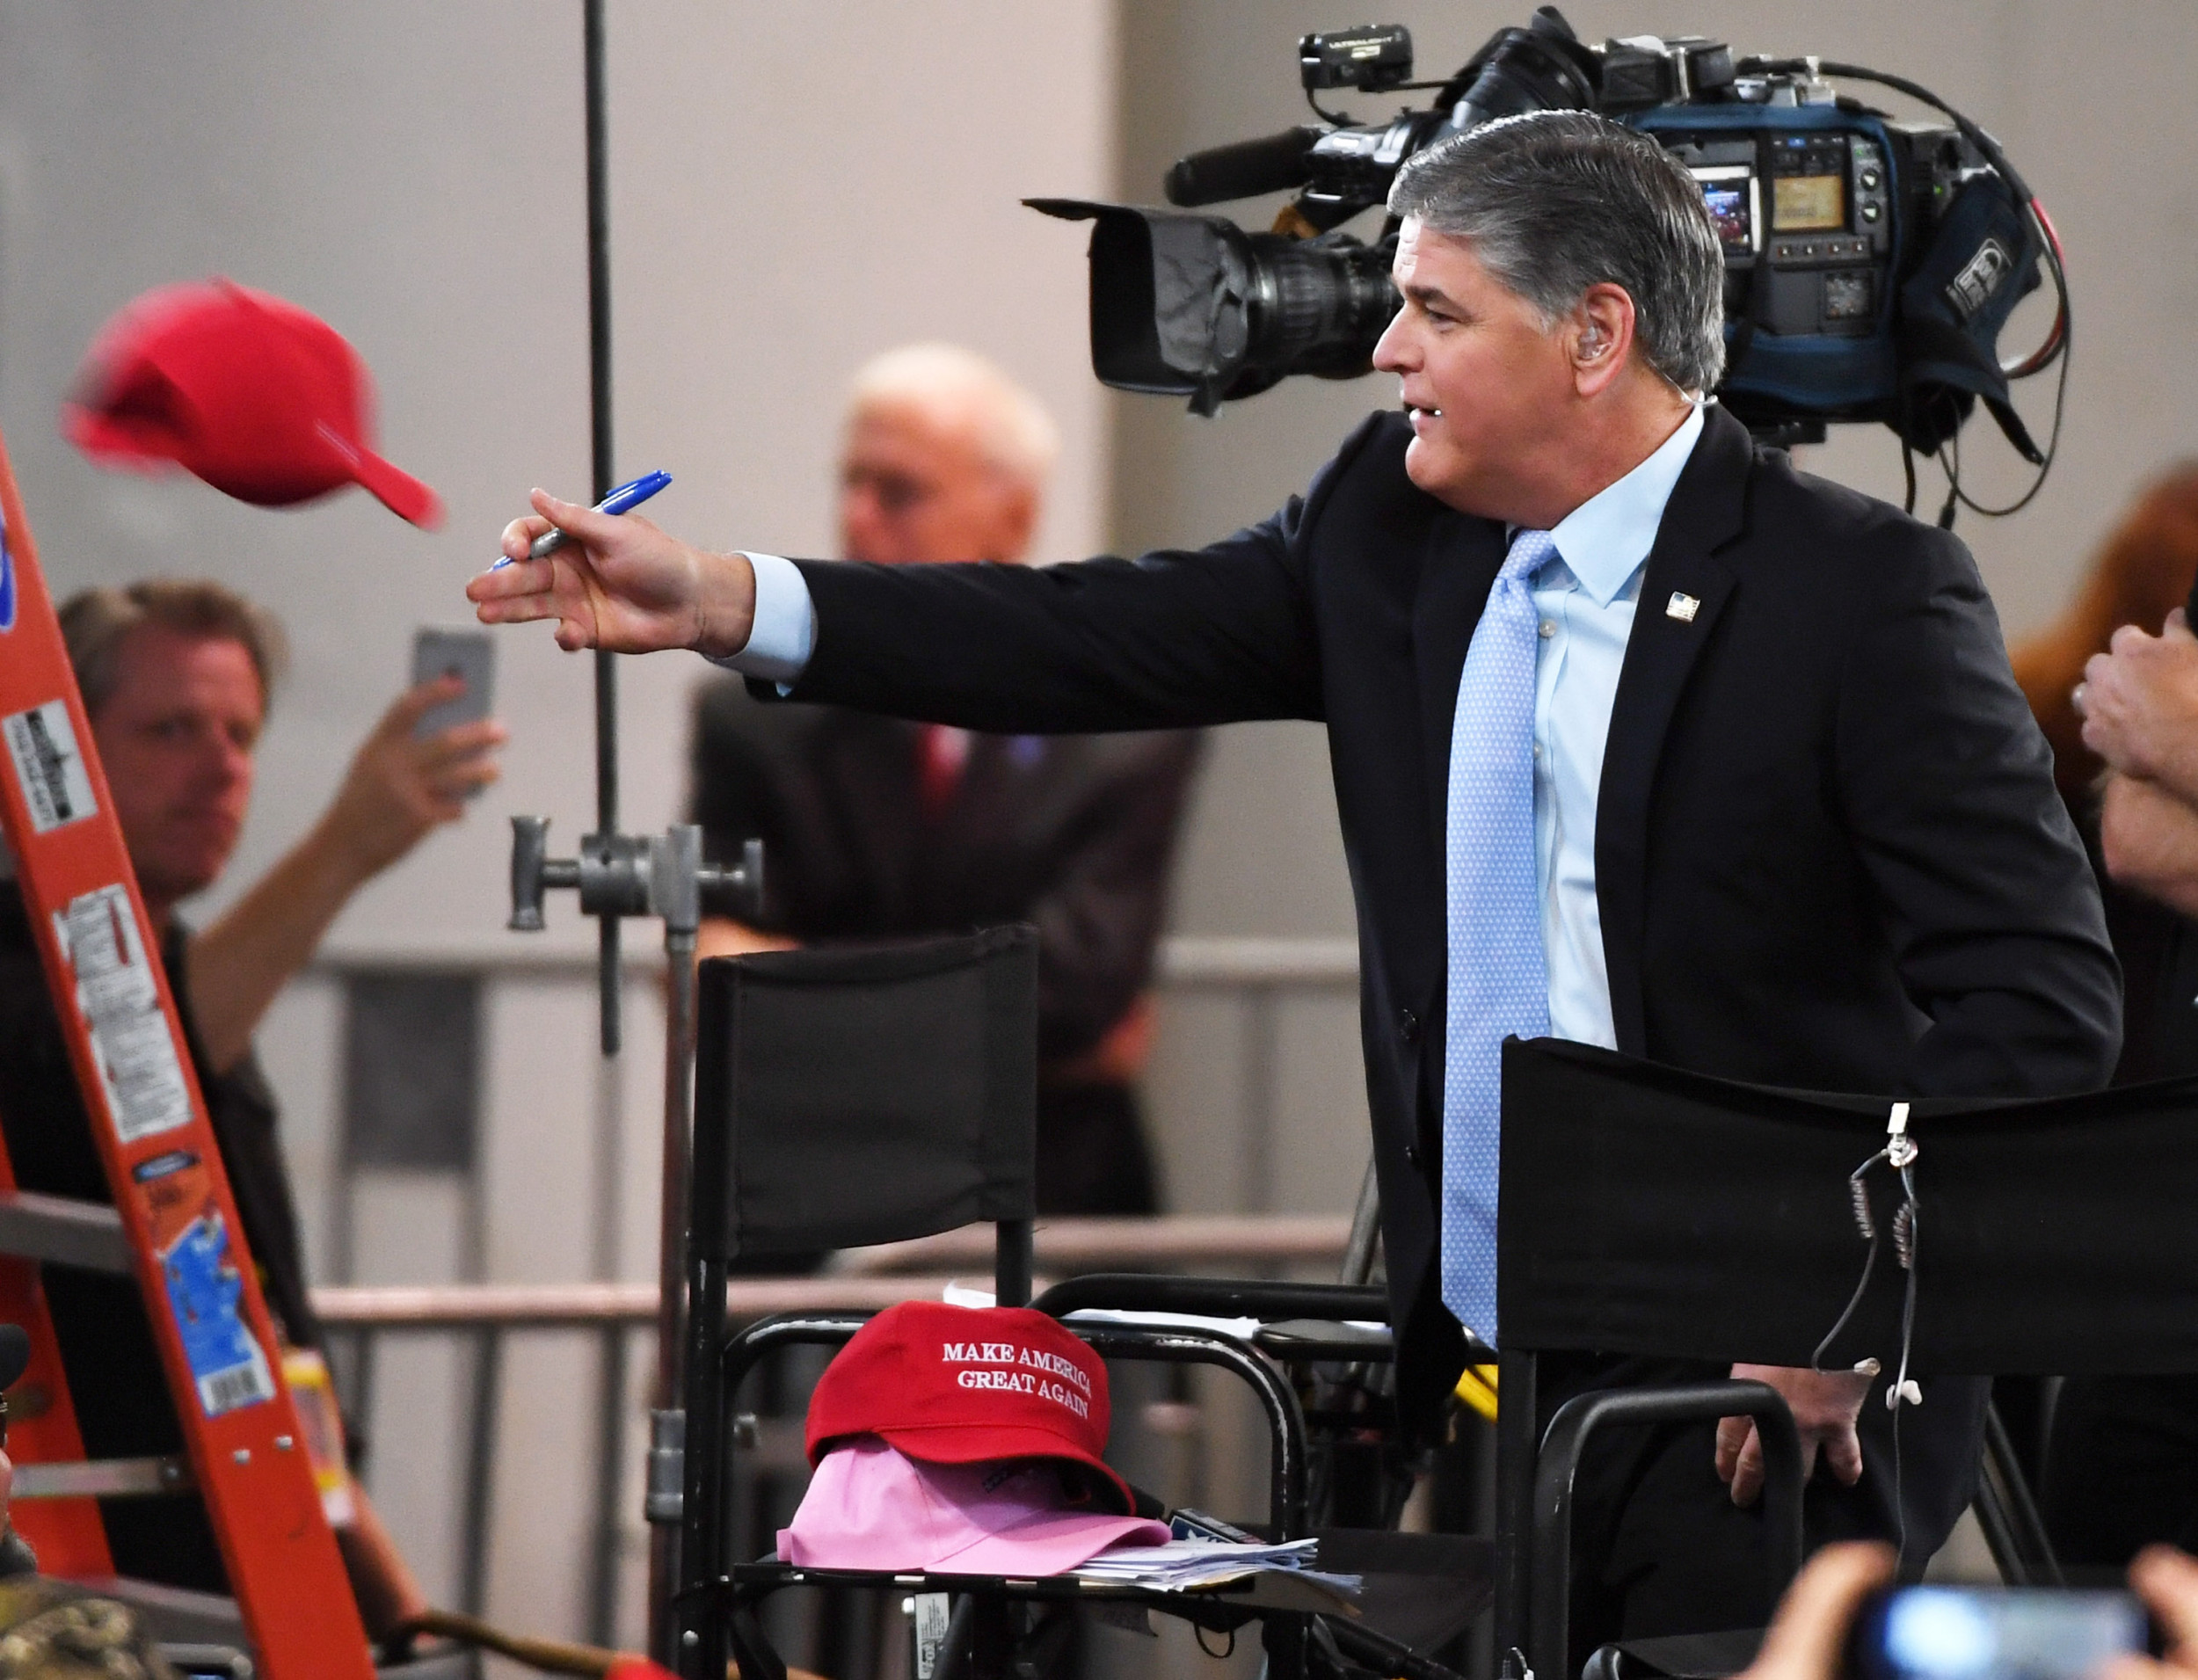 Sean Hannity Was Told to Stop Covering Claims About Ex-Ukraine Ambassador by State Department, Diplomat Claims - Newsweek